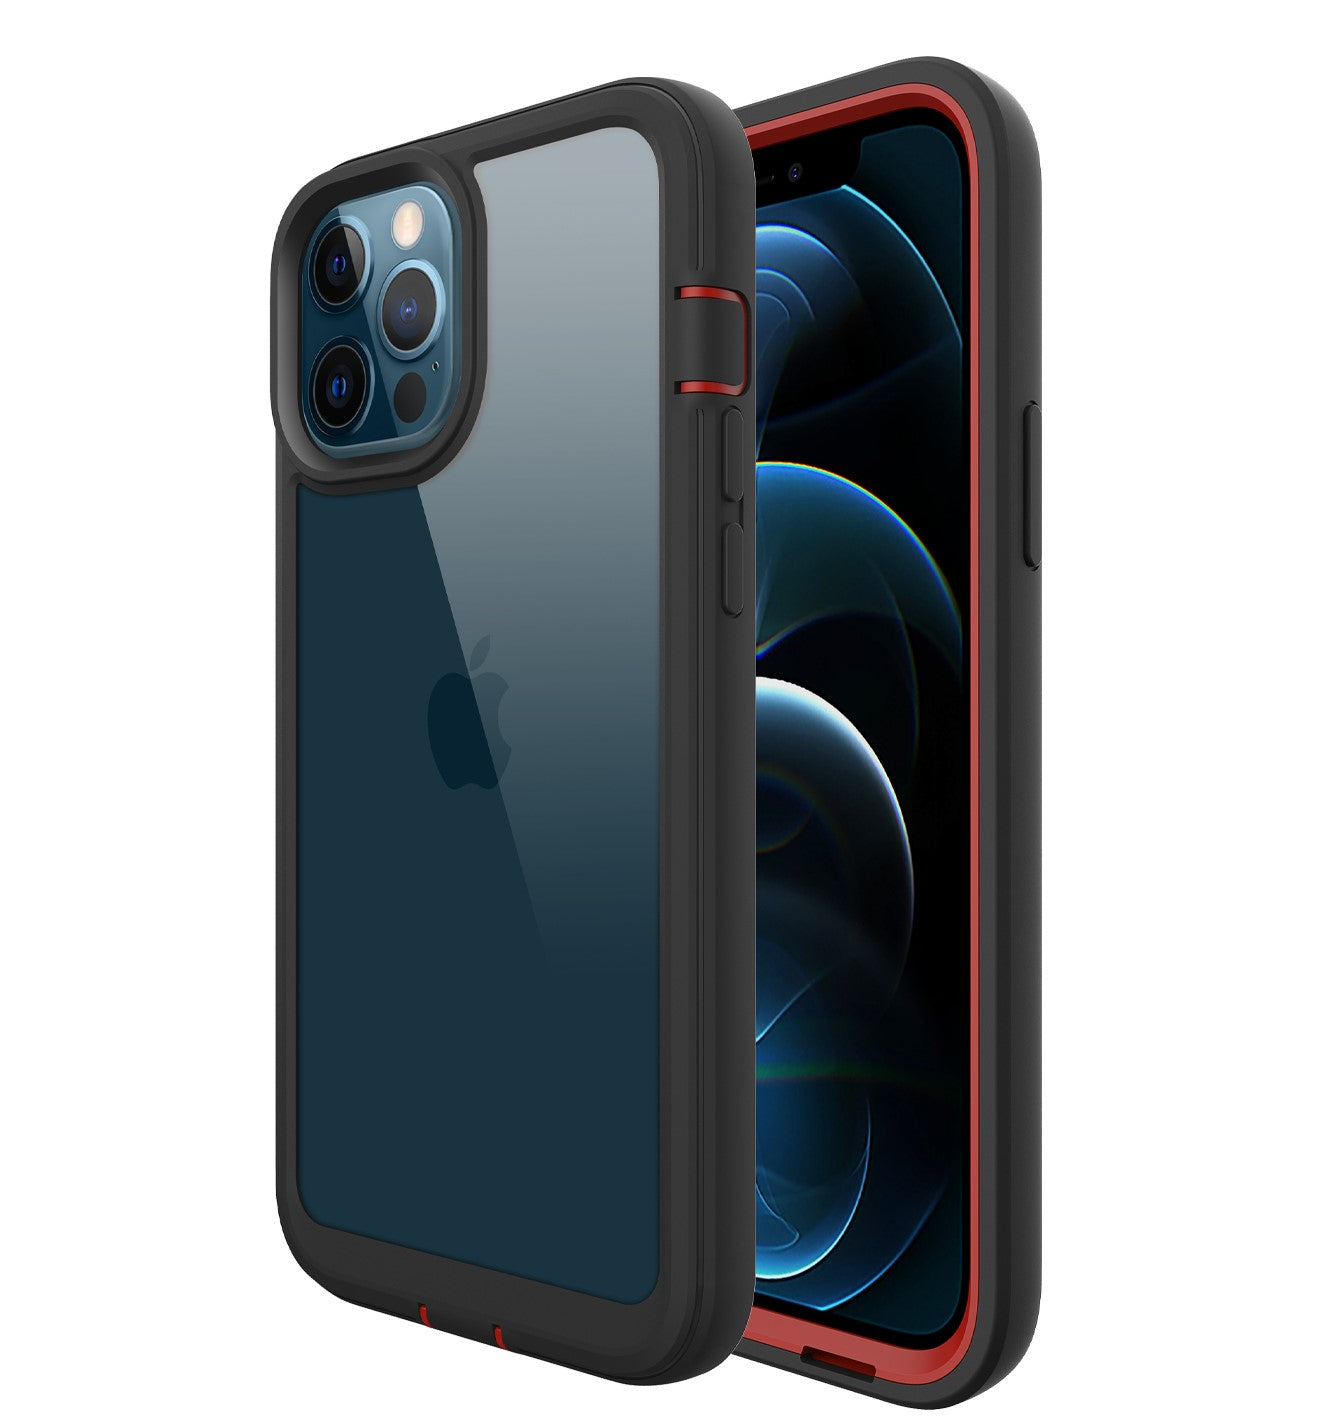 ZEOS Terrain Clear Case for iPhone 12 Pro Max